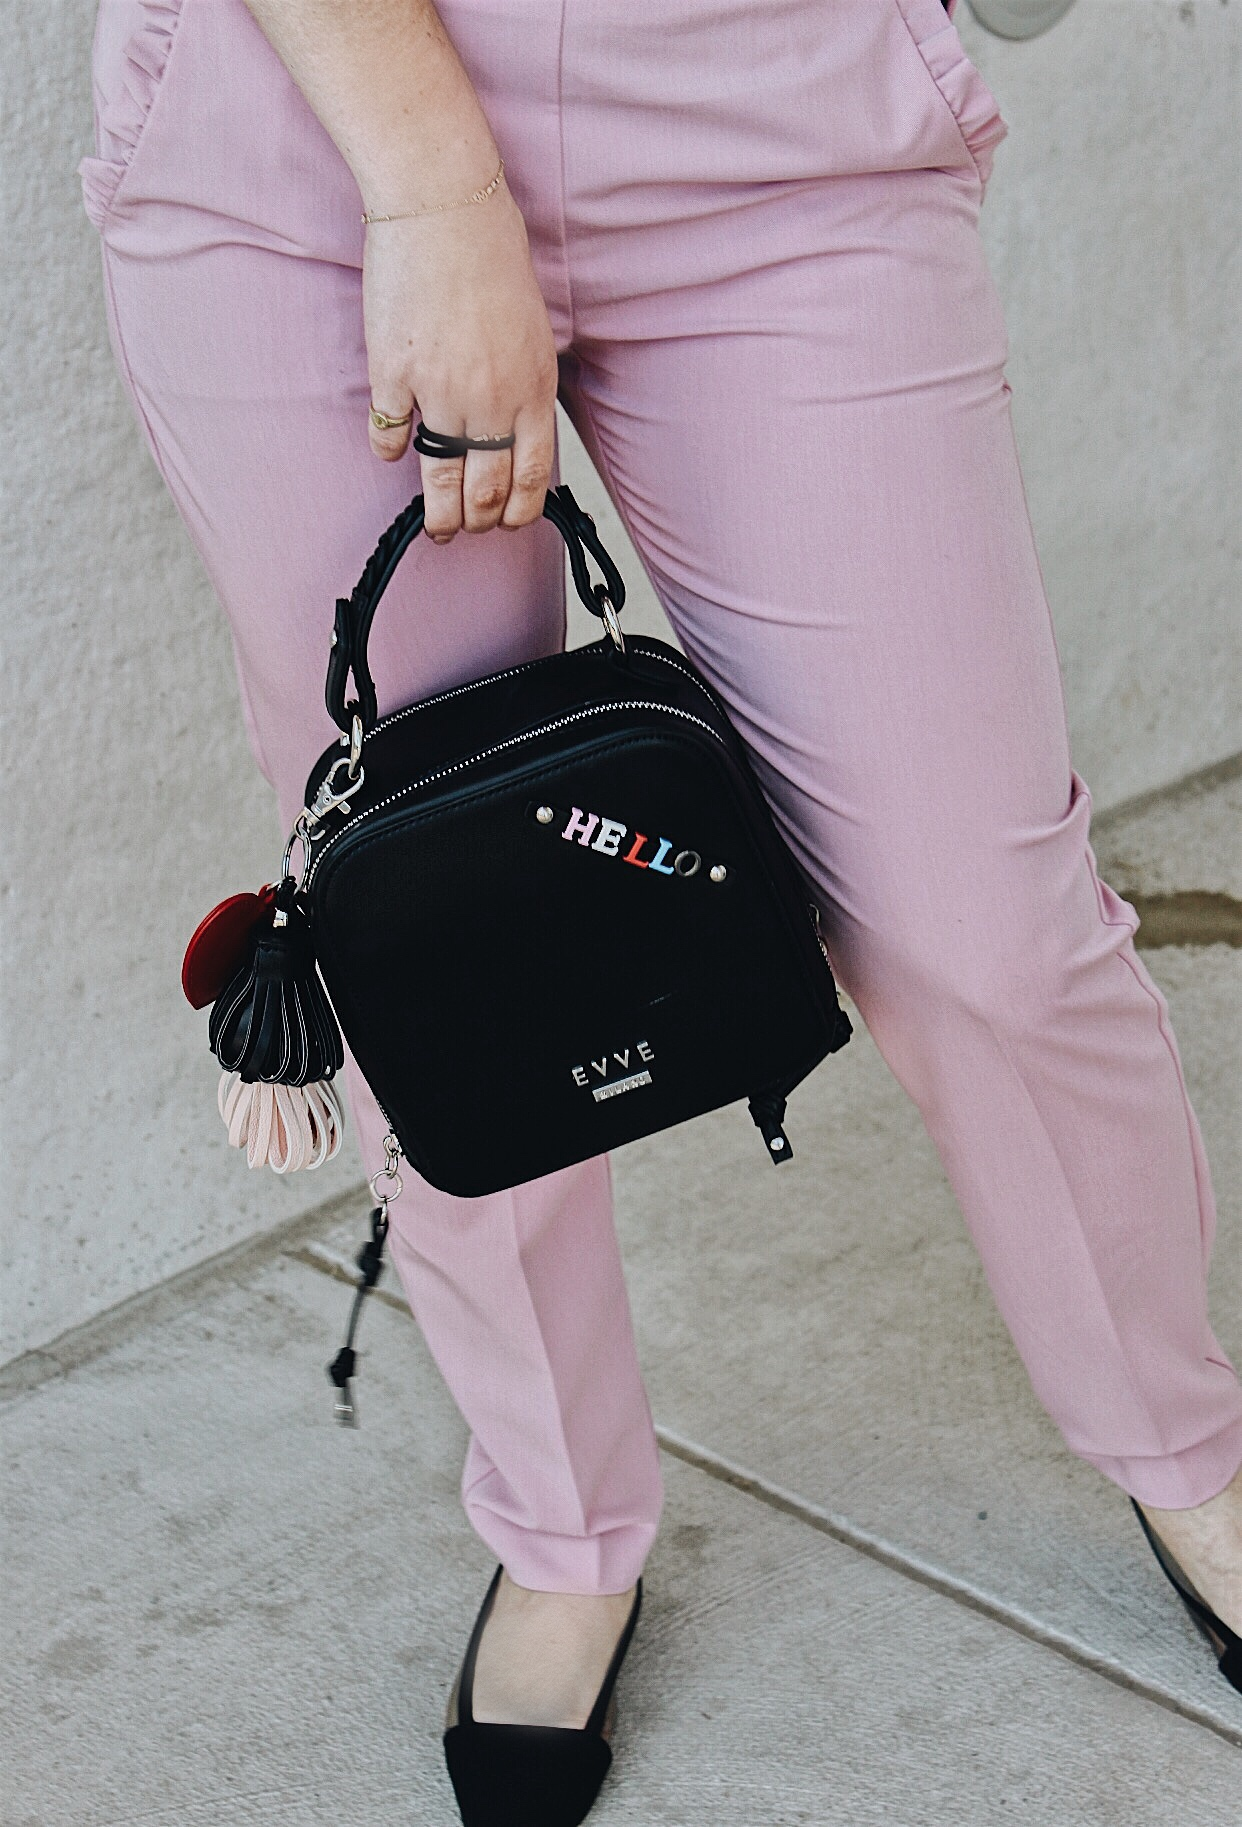 Box Bag Trend - Evve Milano Bag